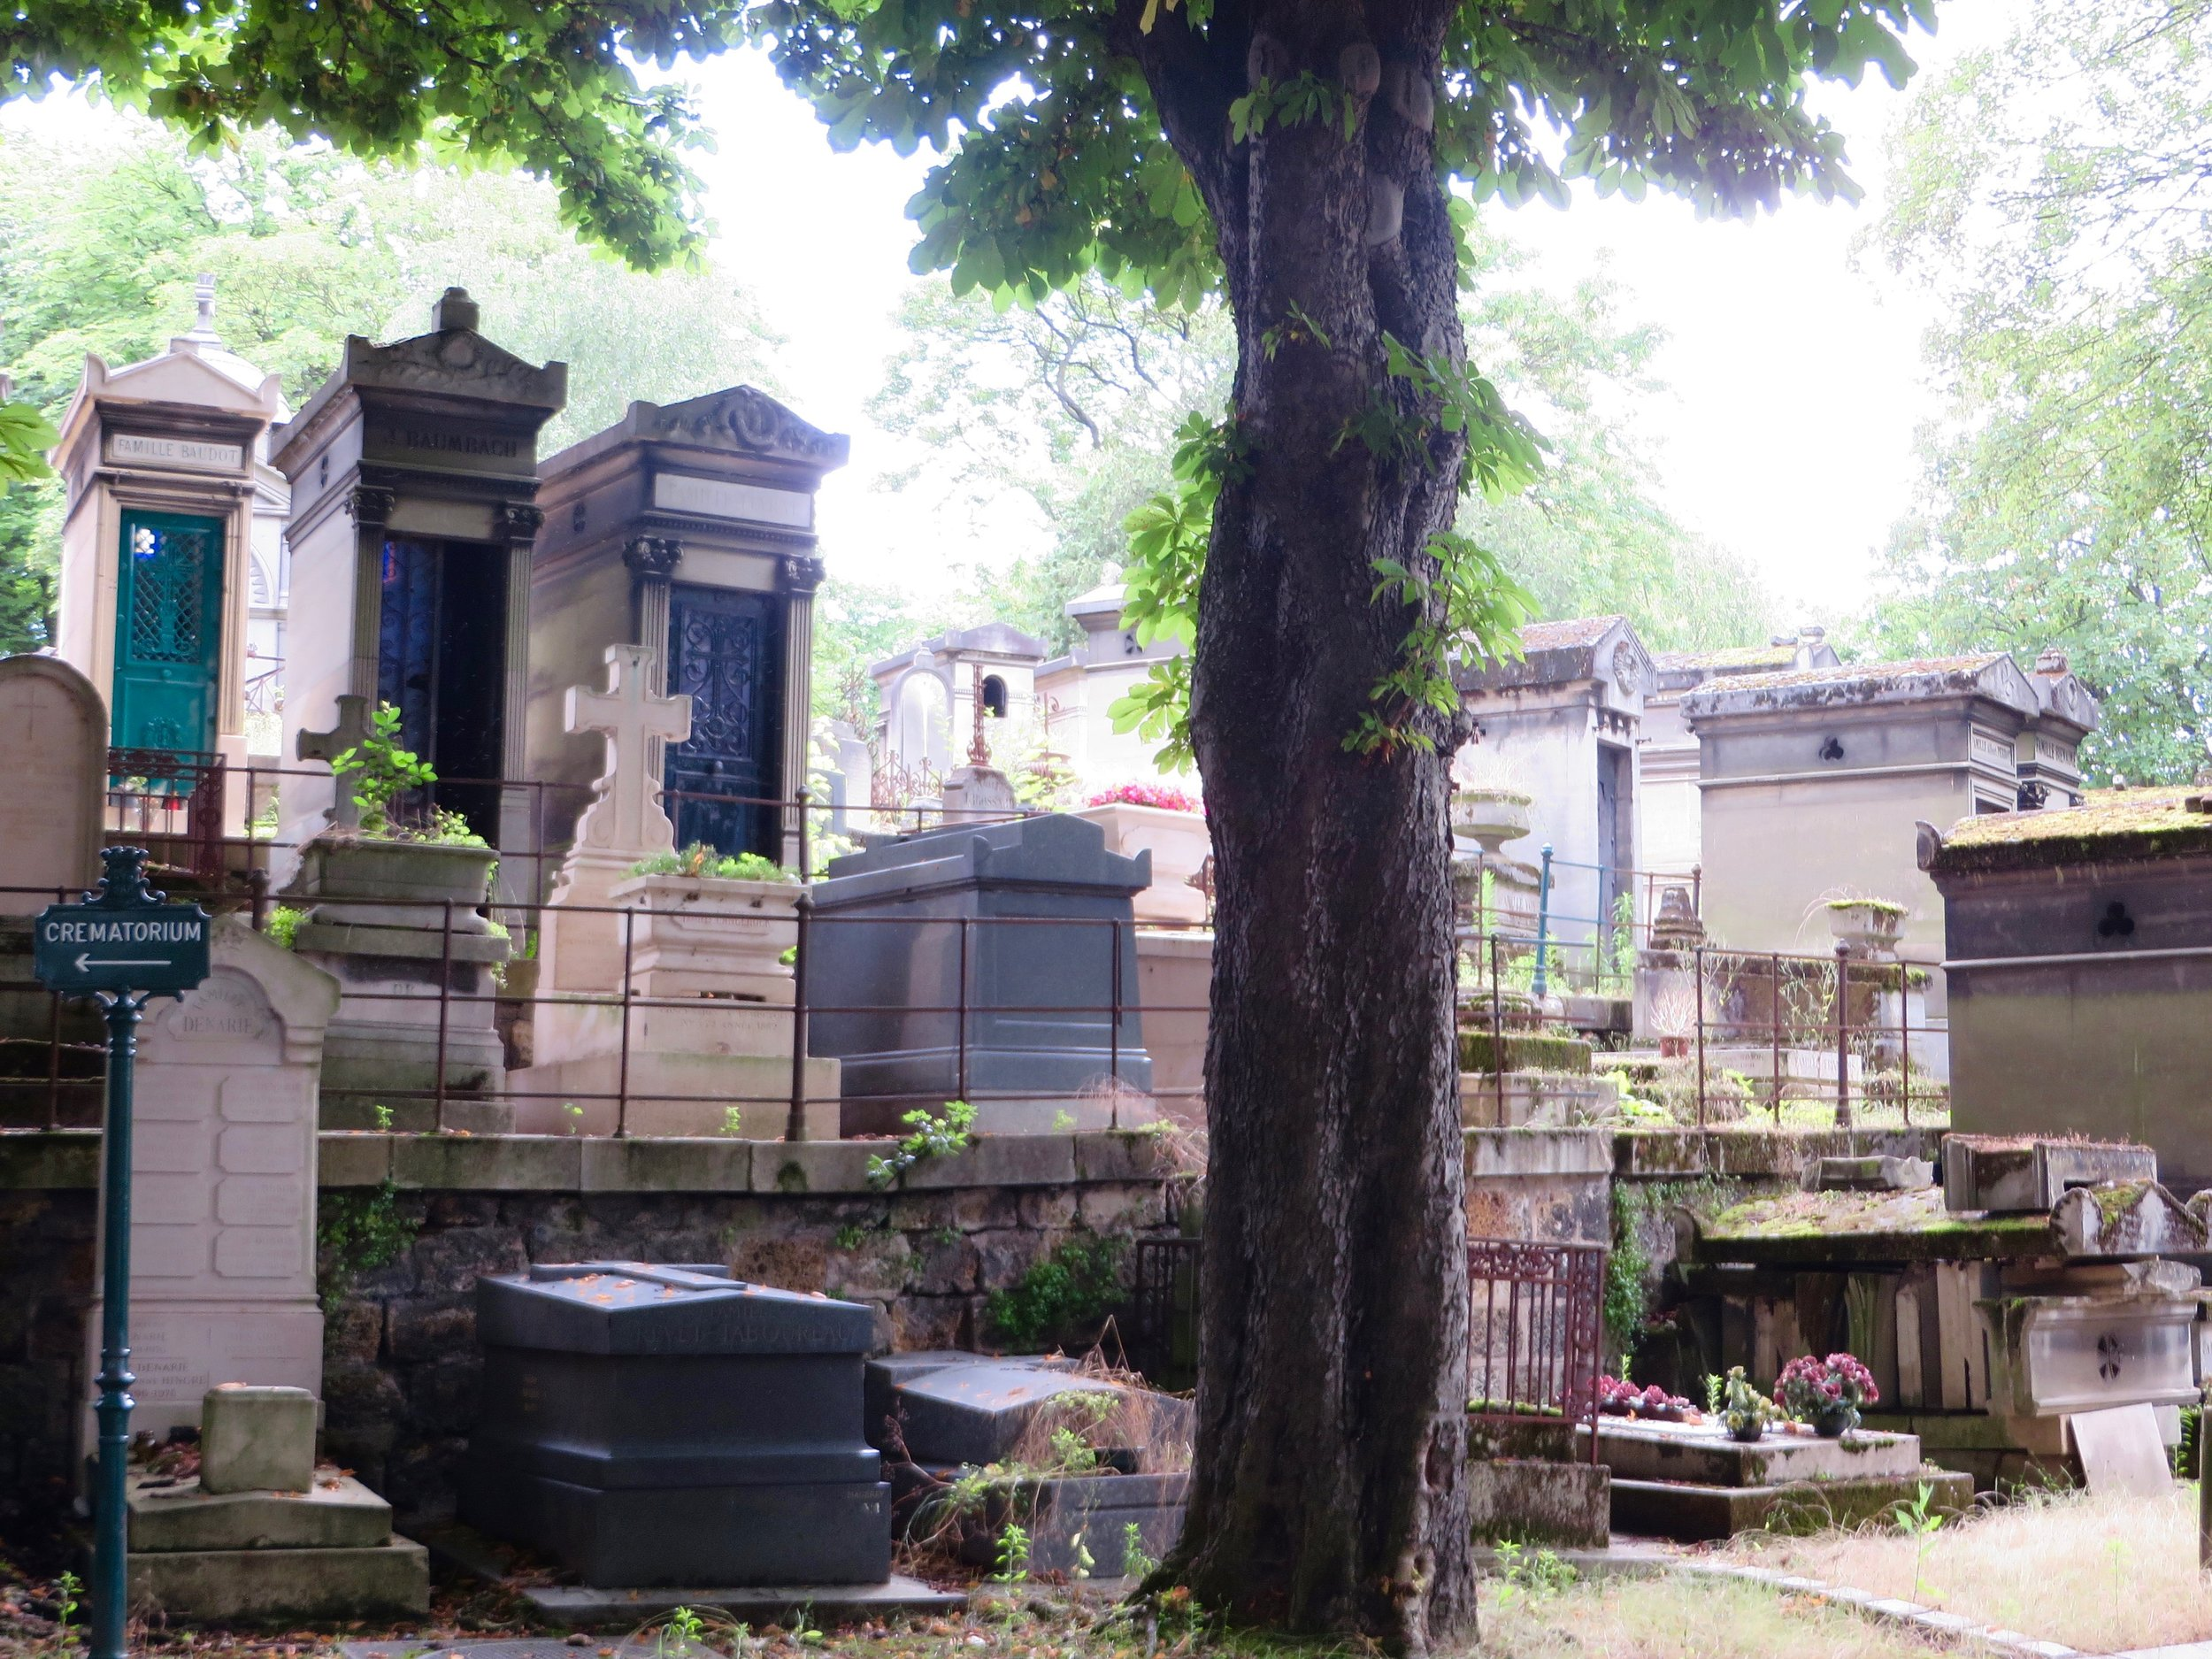 Past selves, future selves ... where are we going?  Photo by author;Père Llachaise Cemetery, Paris.